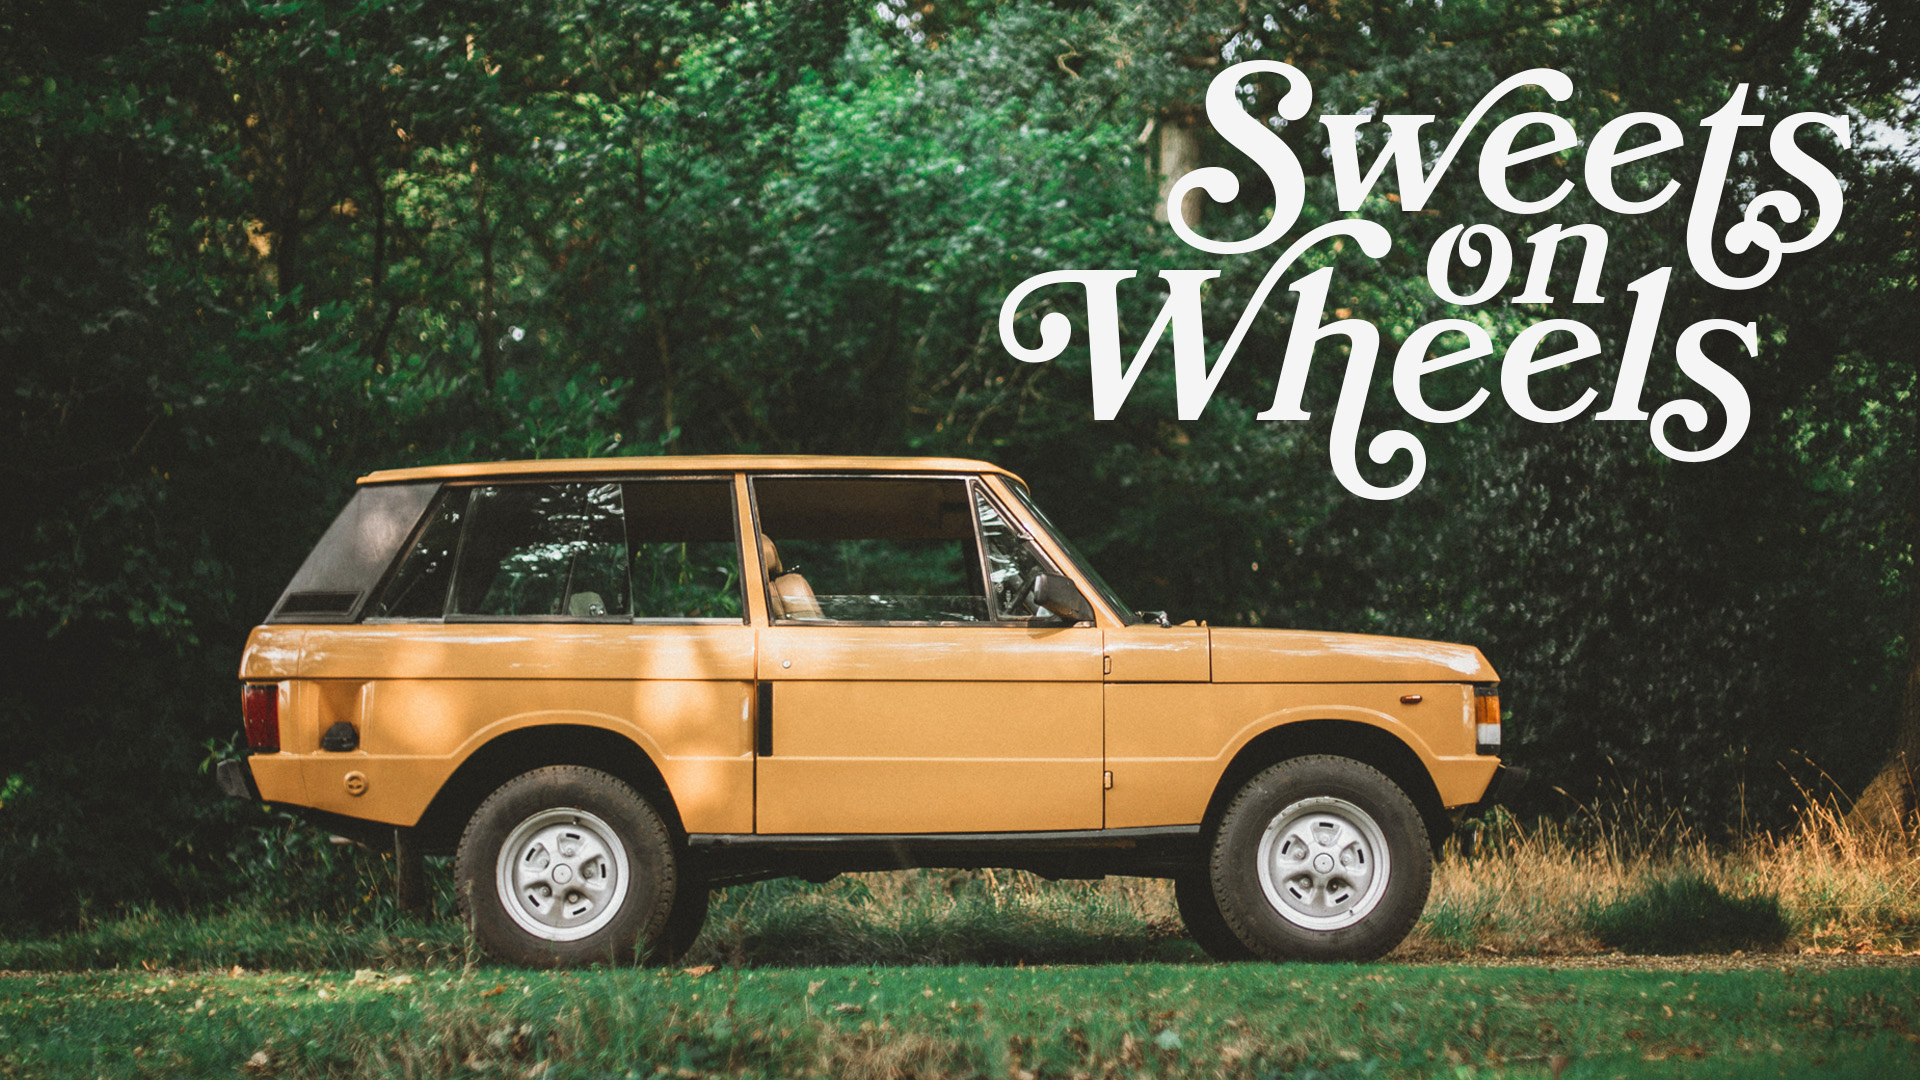 This 1981 Two Door Range Rover Is Sweets On Wheels